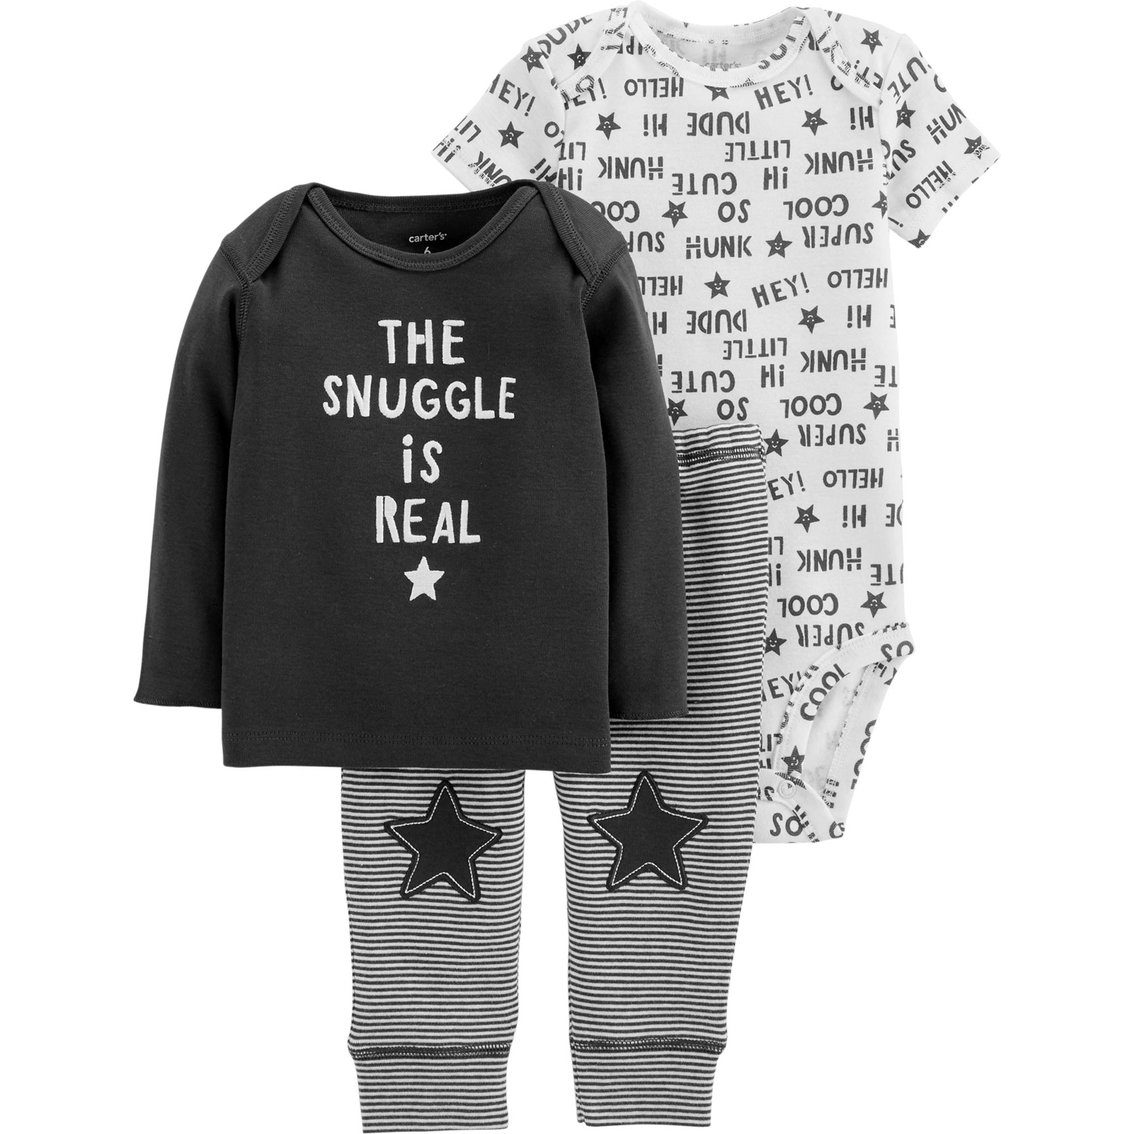 5fff84667 Carter's Infant Boys 3 Pc. Snuggle Is Real Set | Baby Boy 0-24 ...